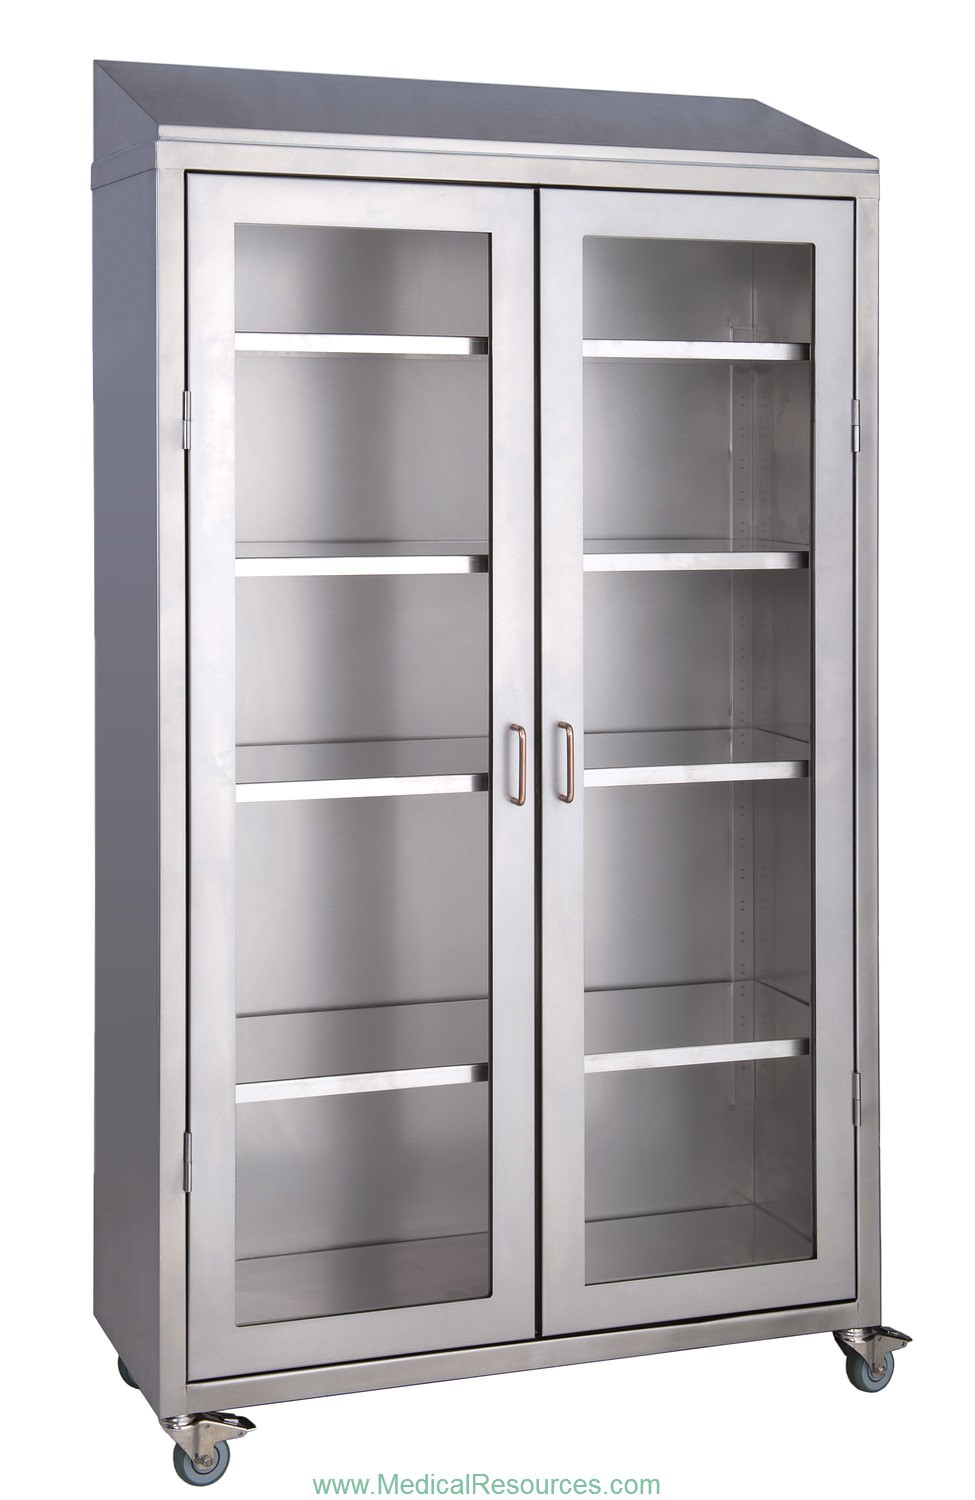 Medwurx mobile stainless steel instrument supply cabinets for Stainless steel cabinet door